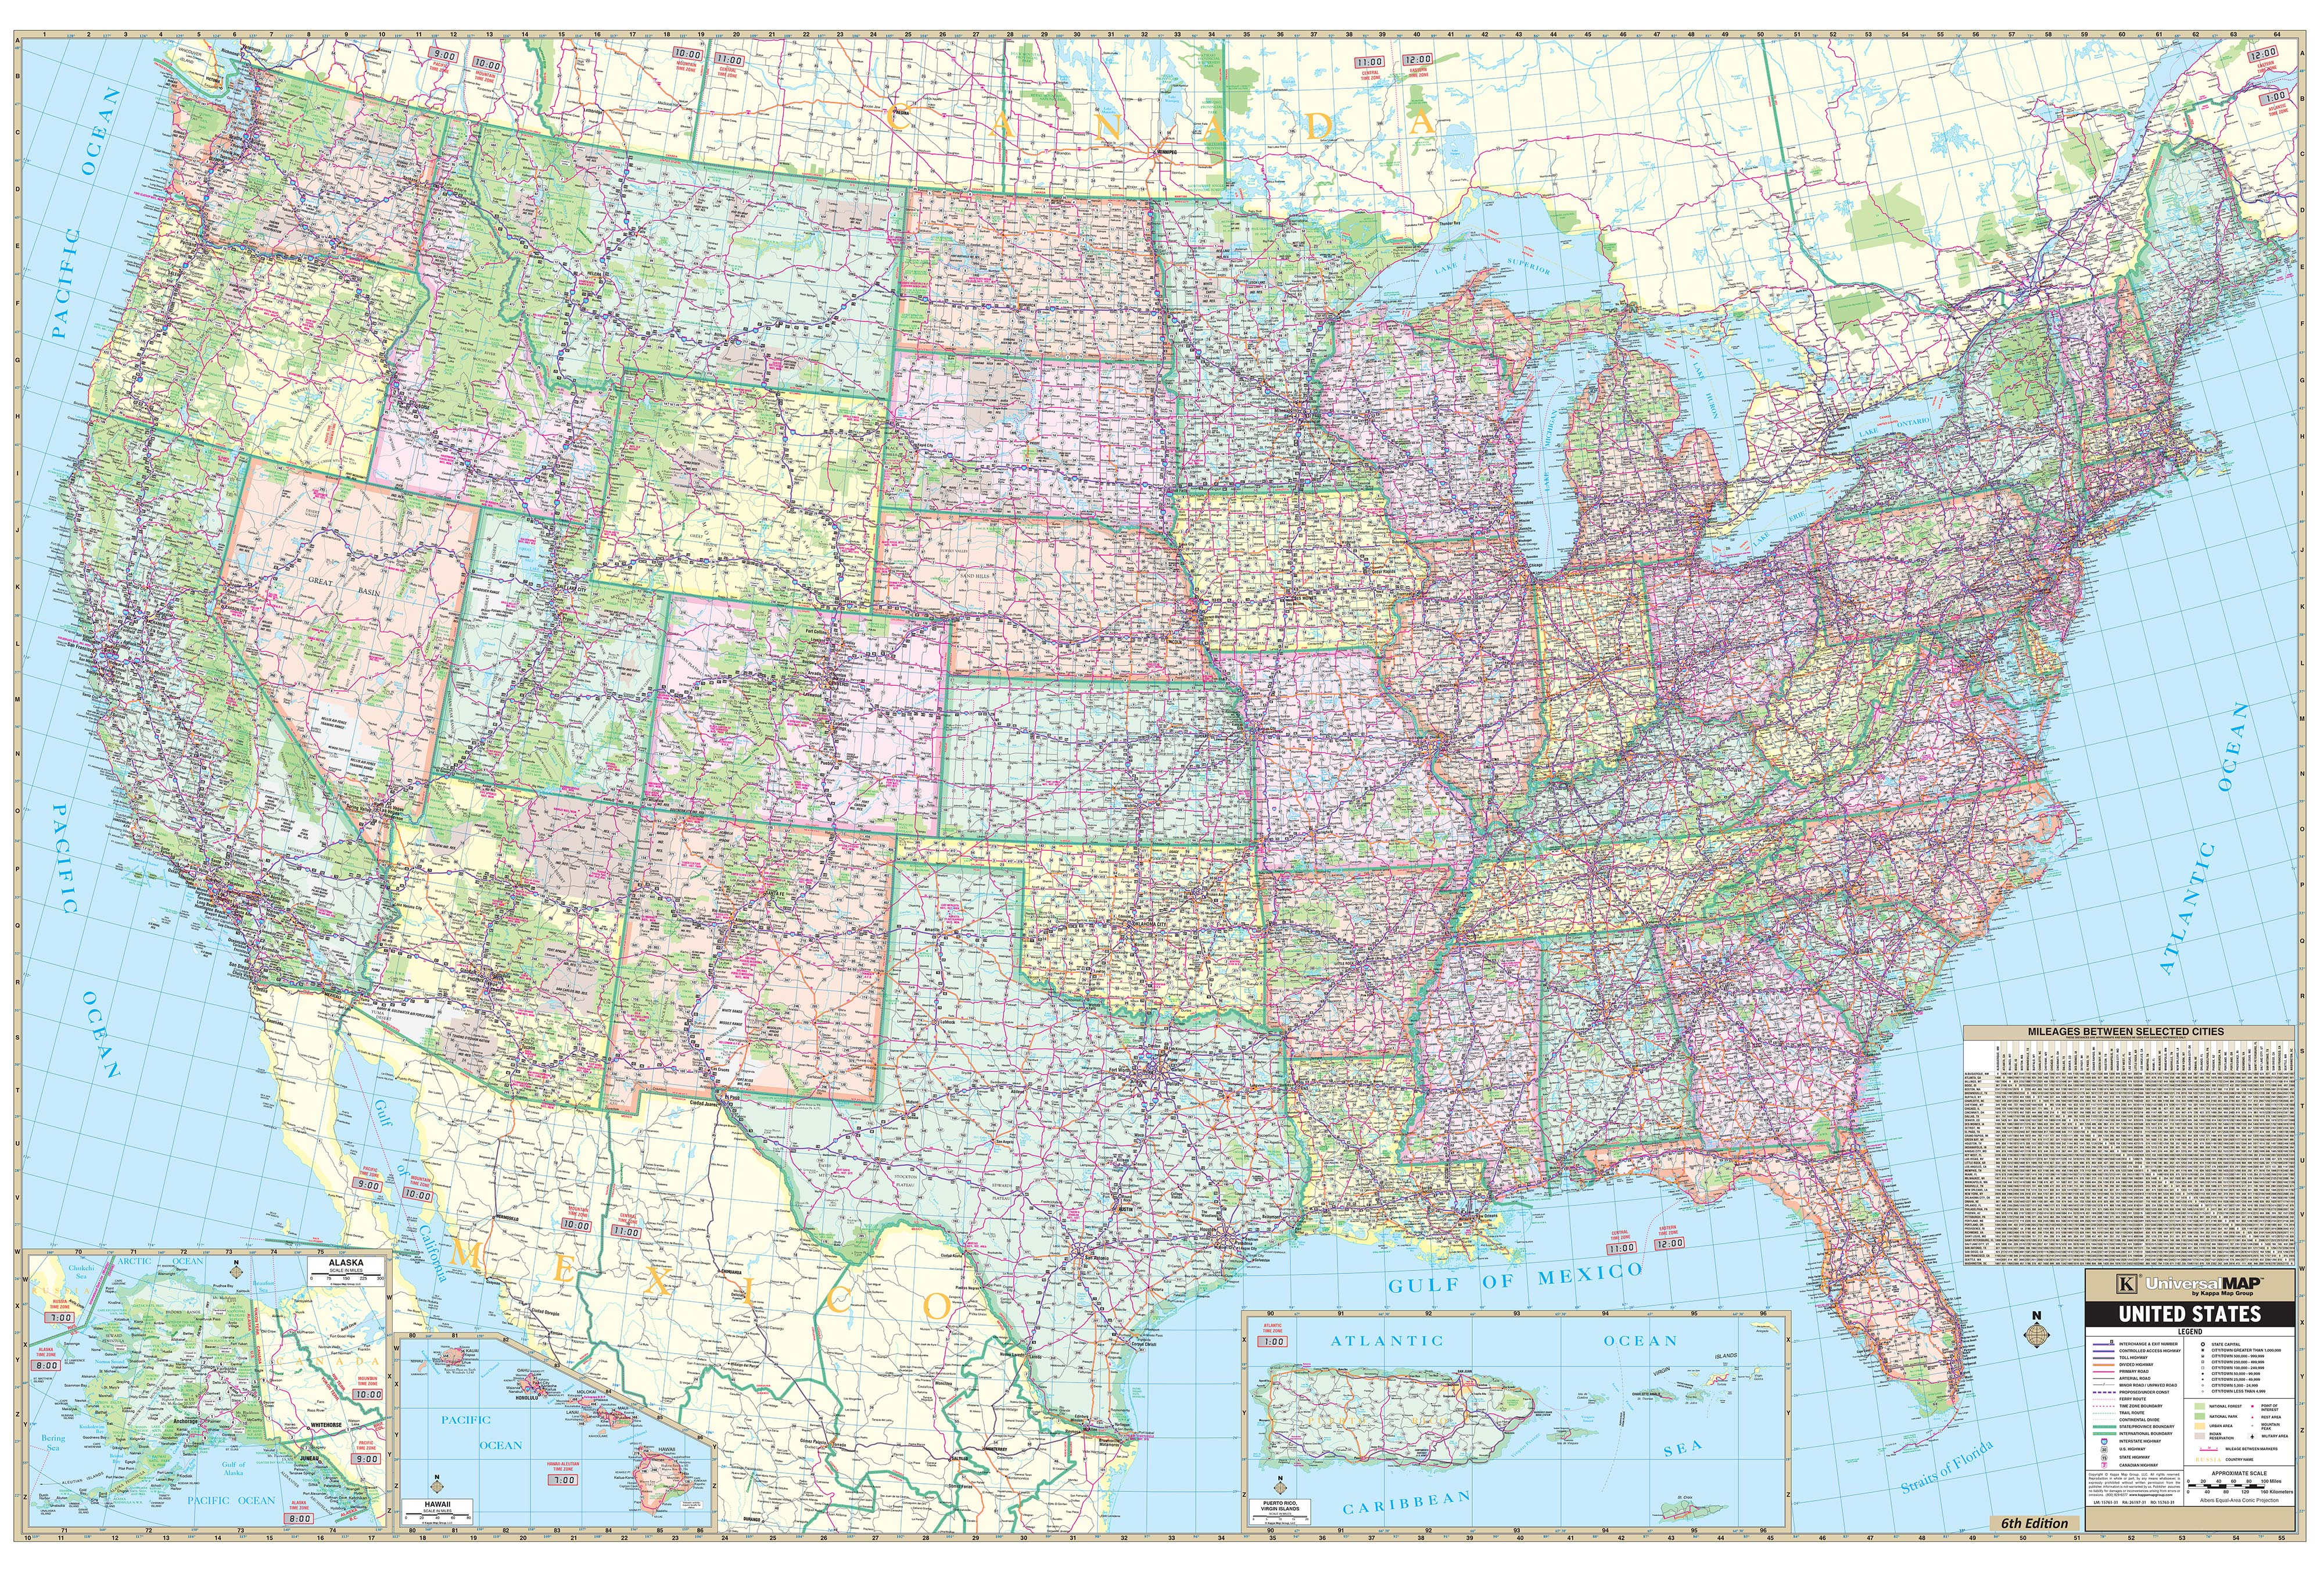 enlarged map of the united states Enlarged Wall Mural Size USA Map